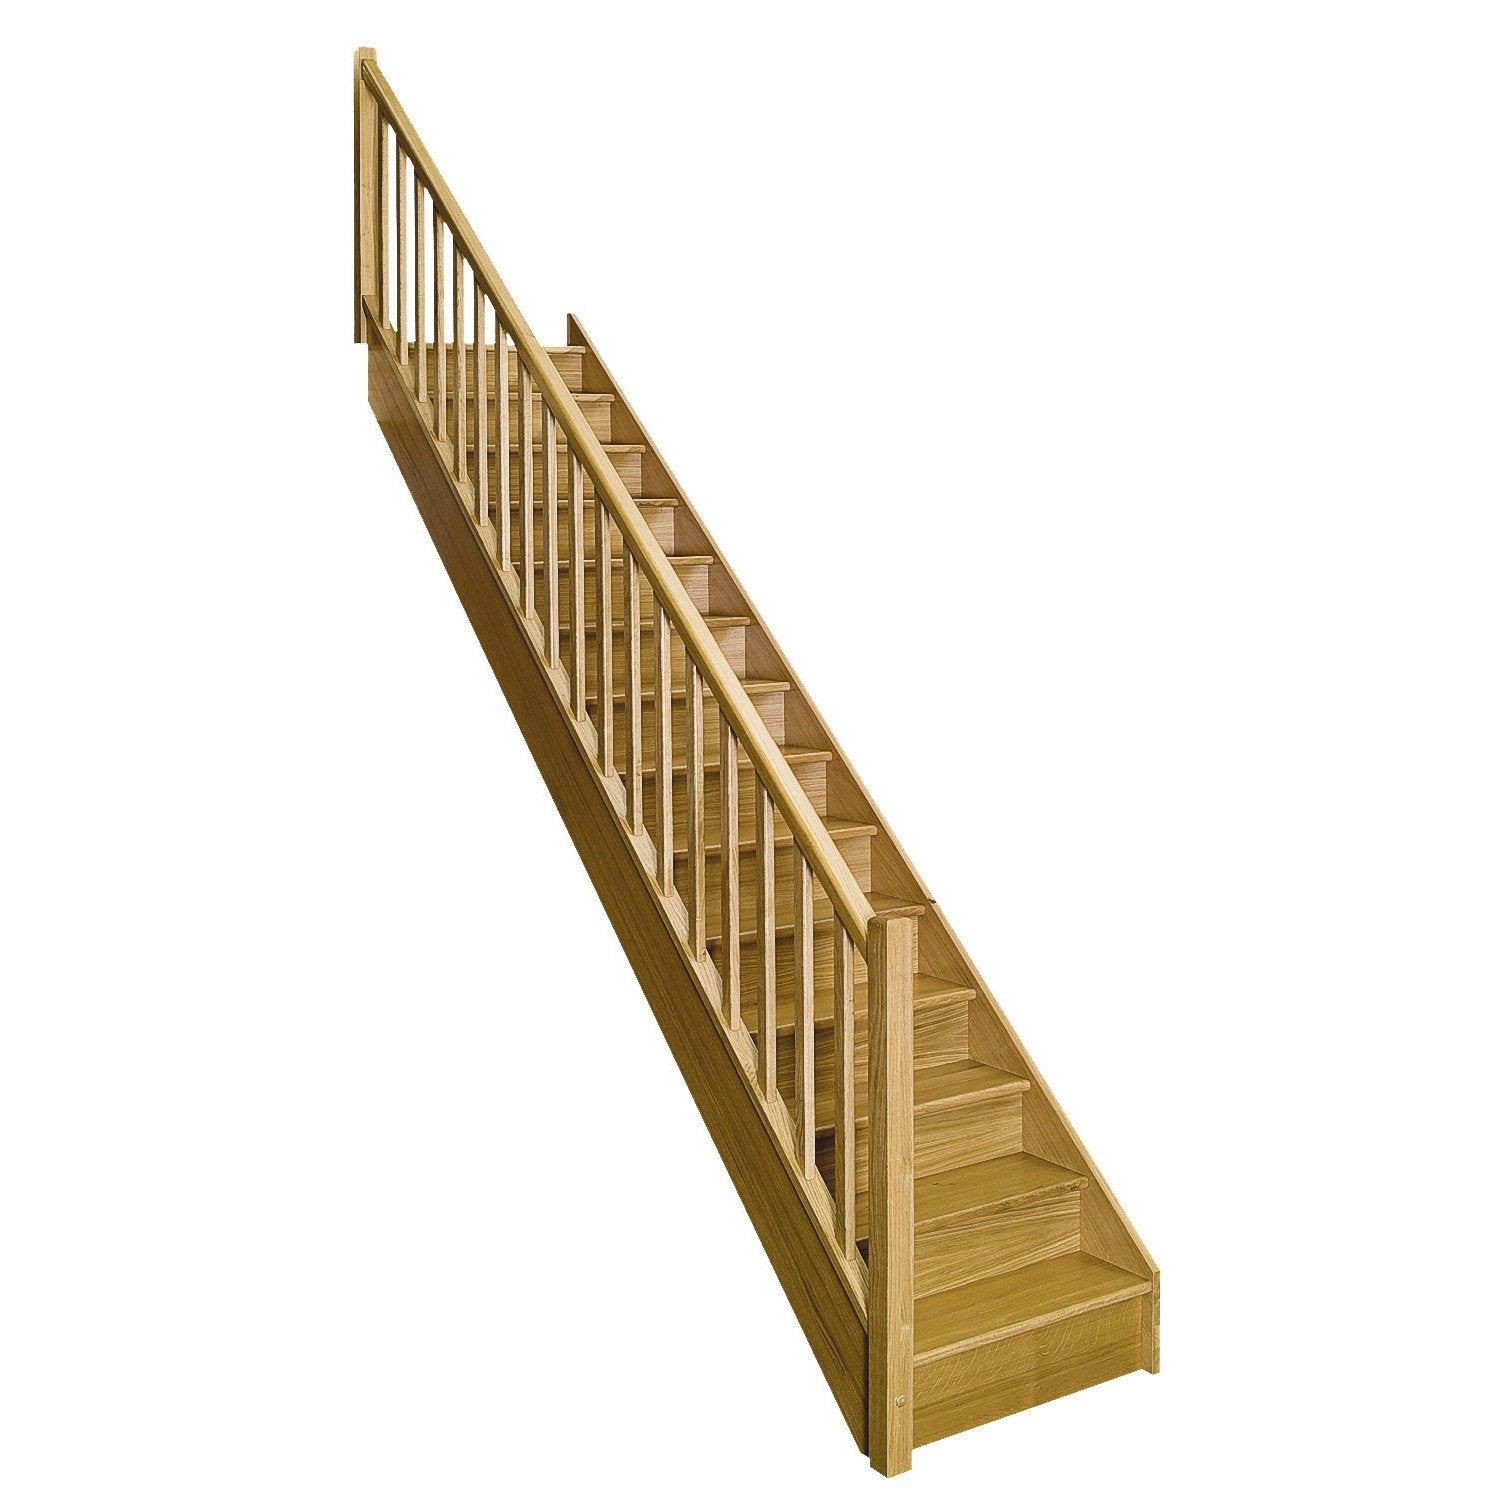 Escalier Bois Leroy Merlin : authentic, marches/structure bois massif ch?ne brut Leroy Merlin